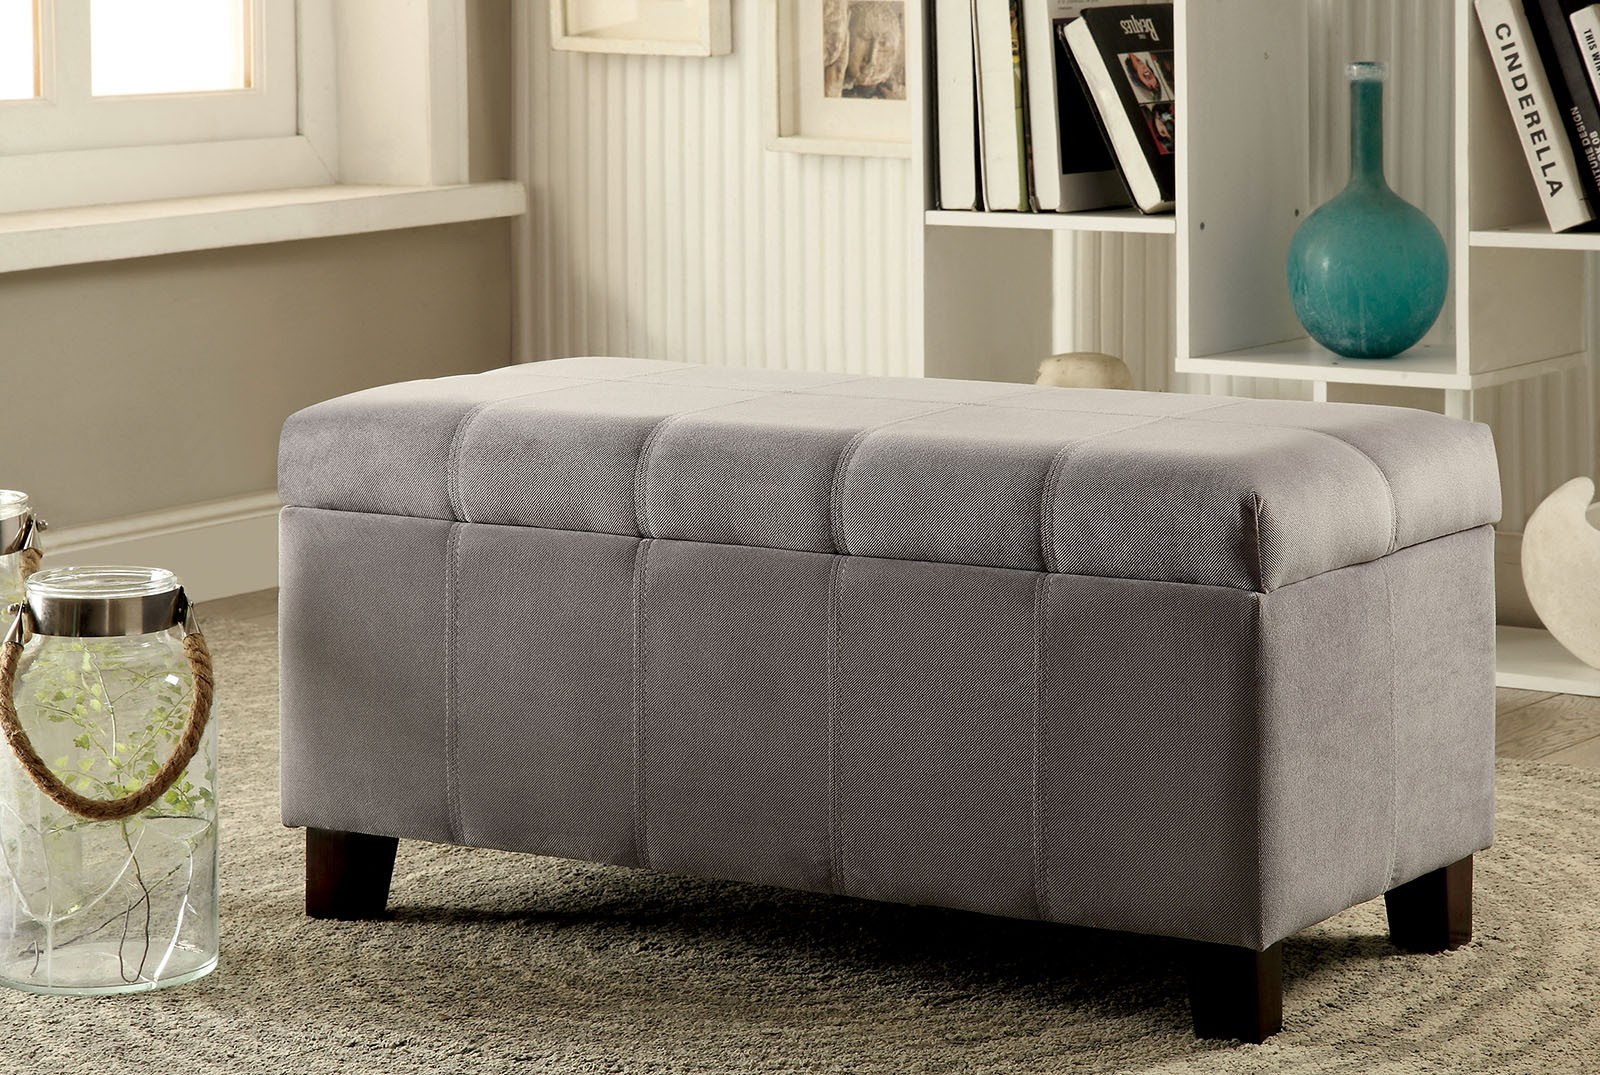 1PerfectChoice Remi Contemporary Padded Flannelette Flip-Top Storage Ottoman Bench Footstool Gray by 1PerfectChoice